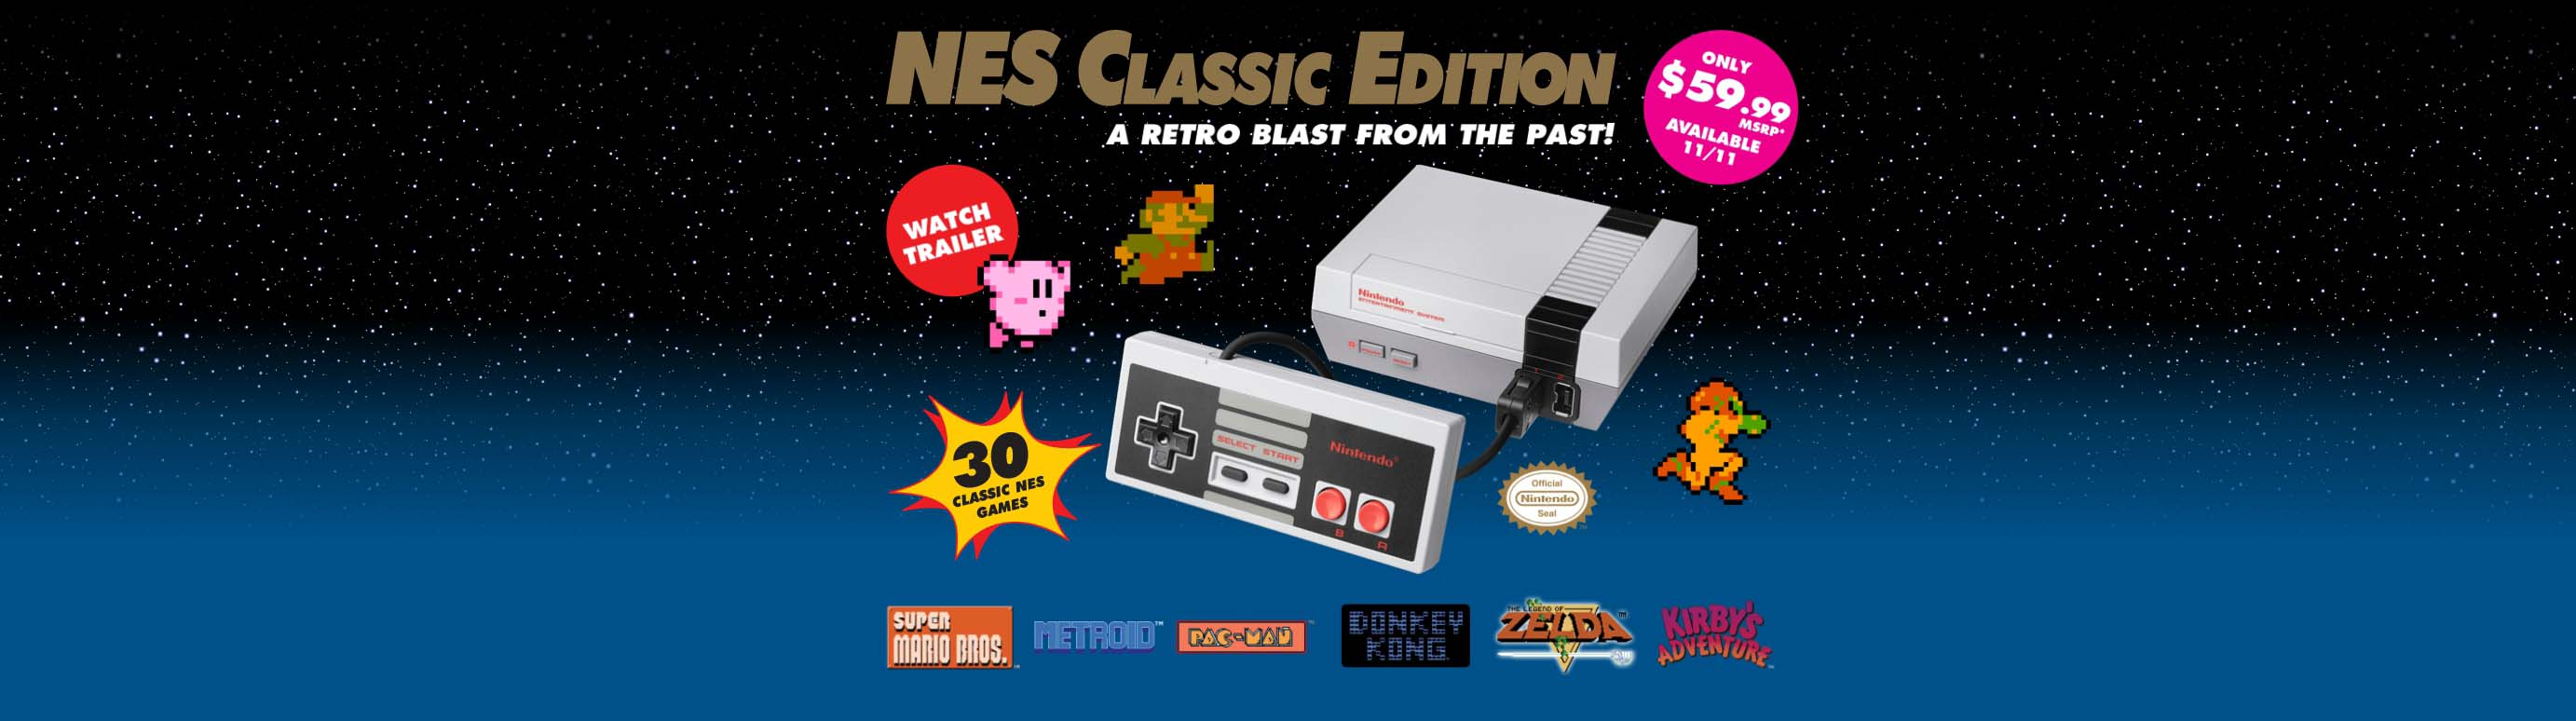 Reklame-film for nye NES Classic Edition